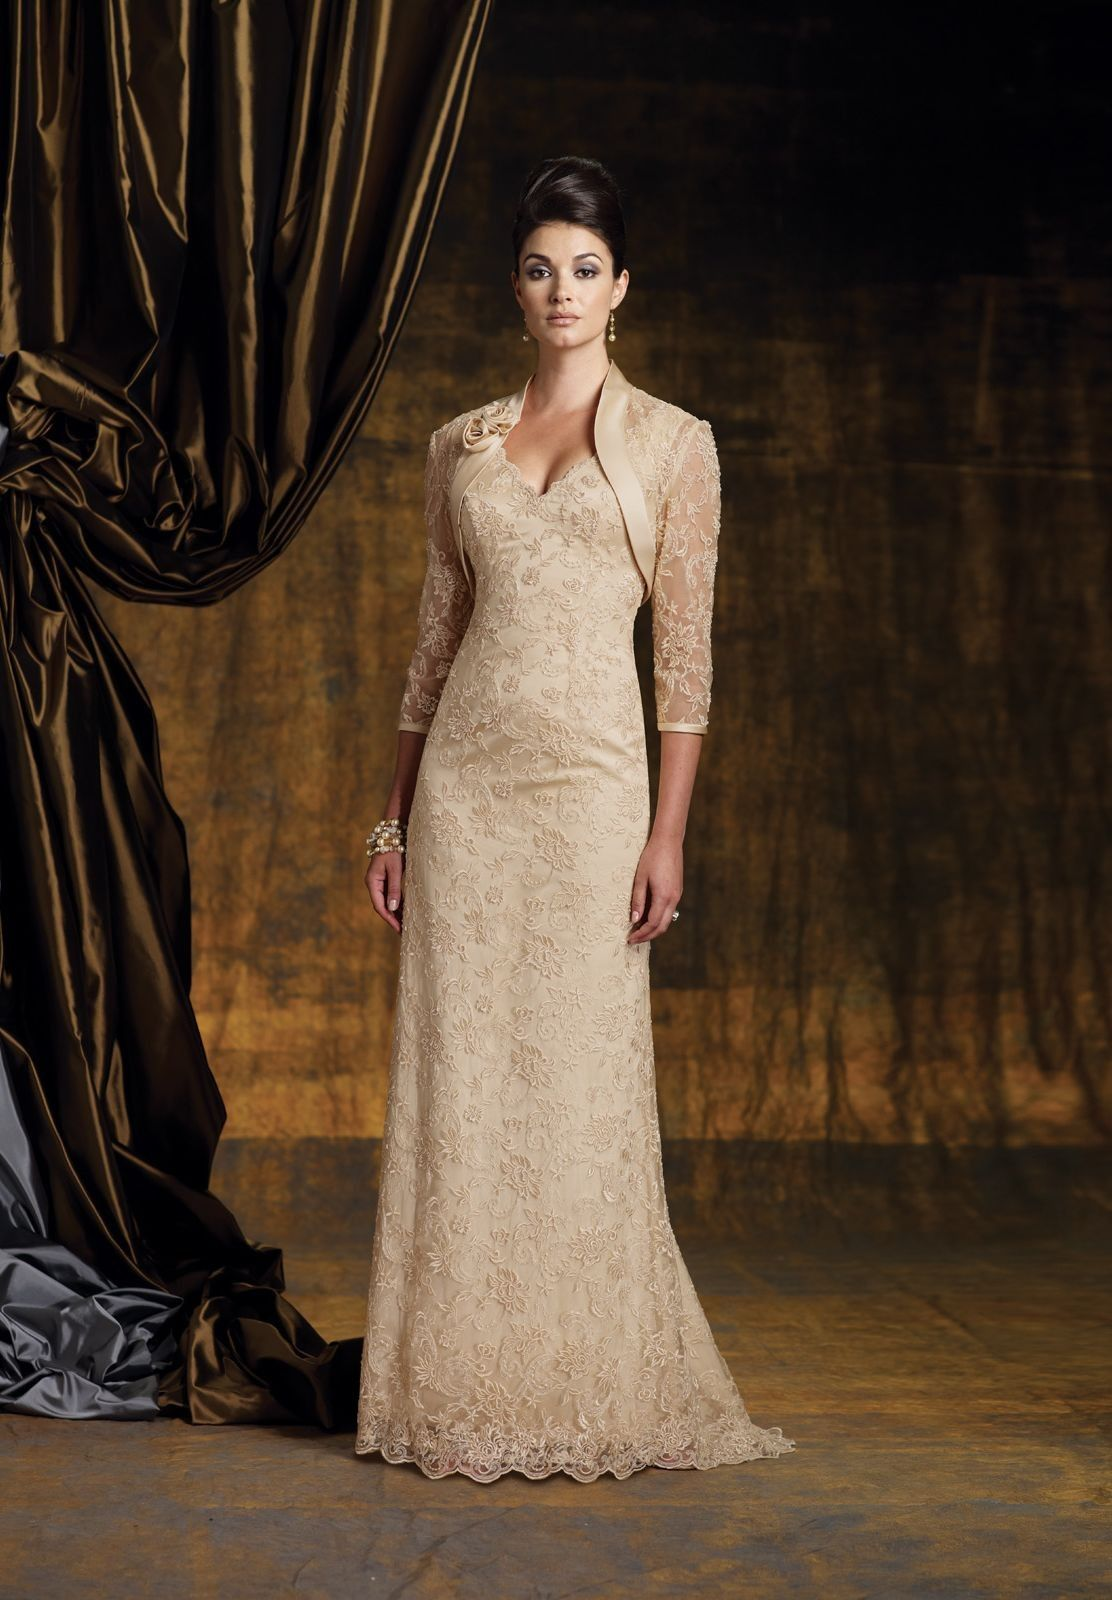 The Mother of Bride Dresses with Long Lace Jacket